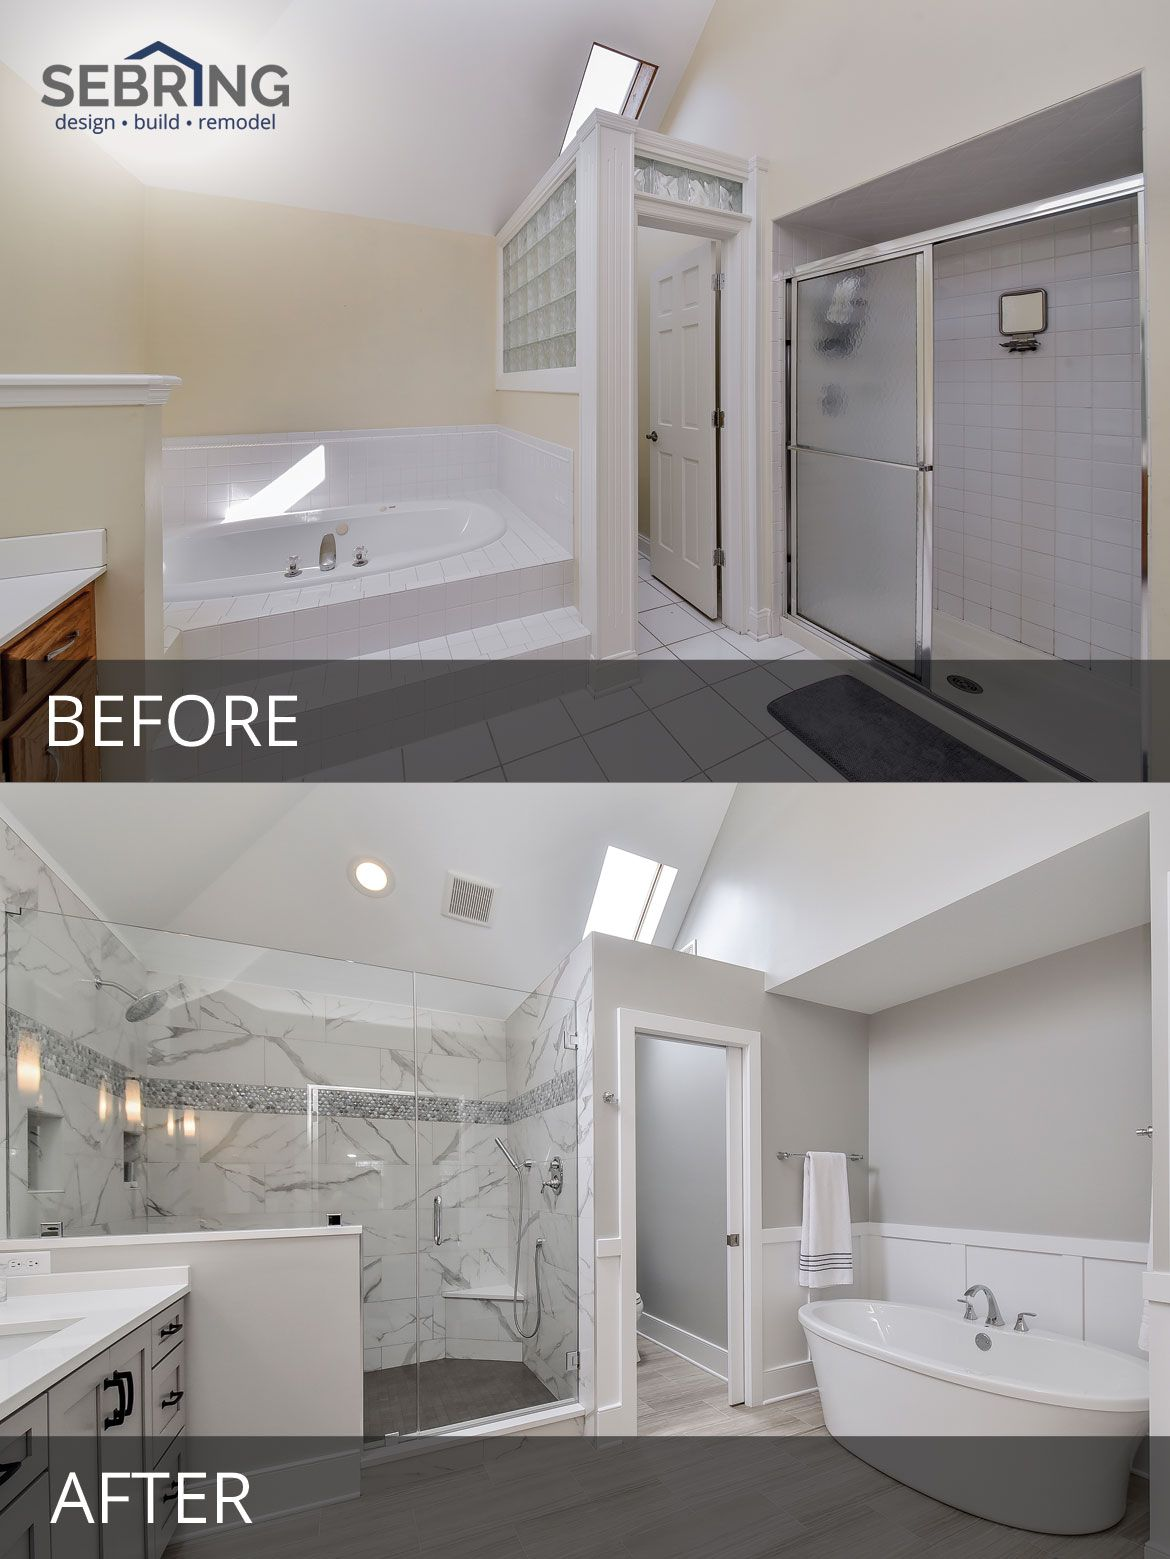 Sarah Ray S Master Bathroom Before After Pictures Bathroom Remodel Master Bathrooms Remodel Bathroom Before After